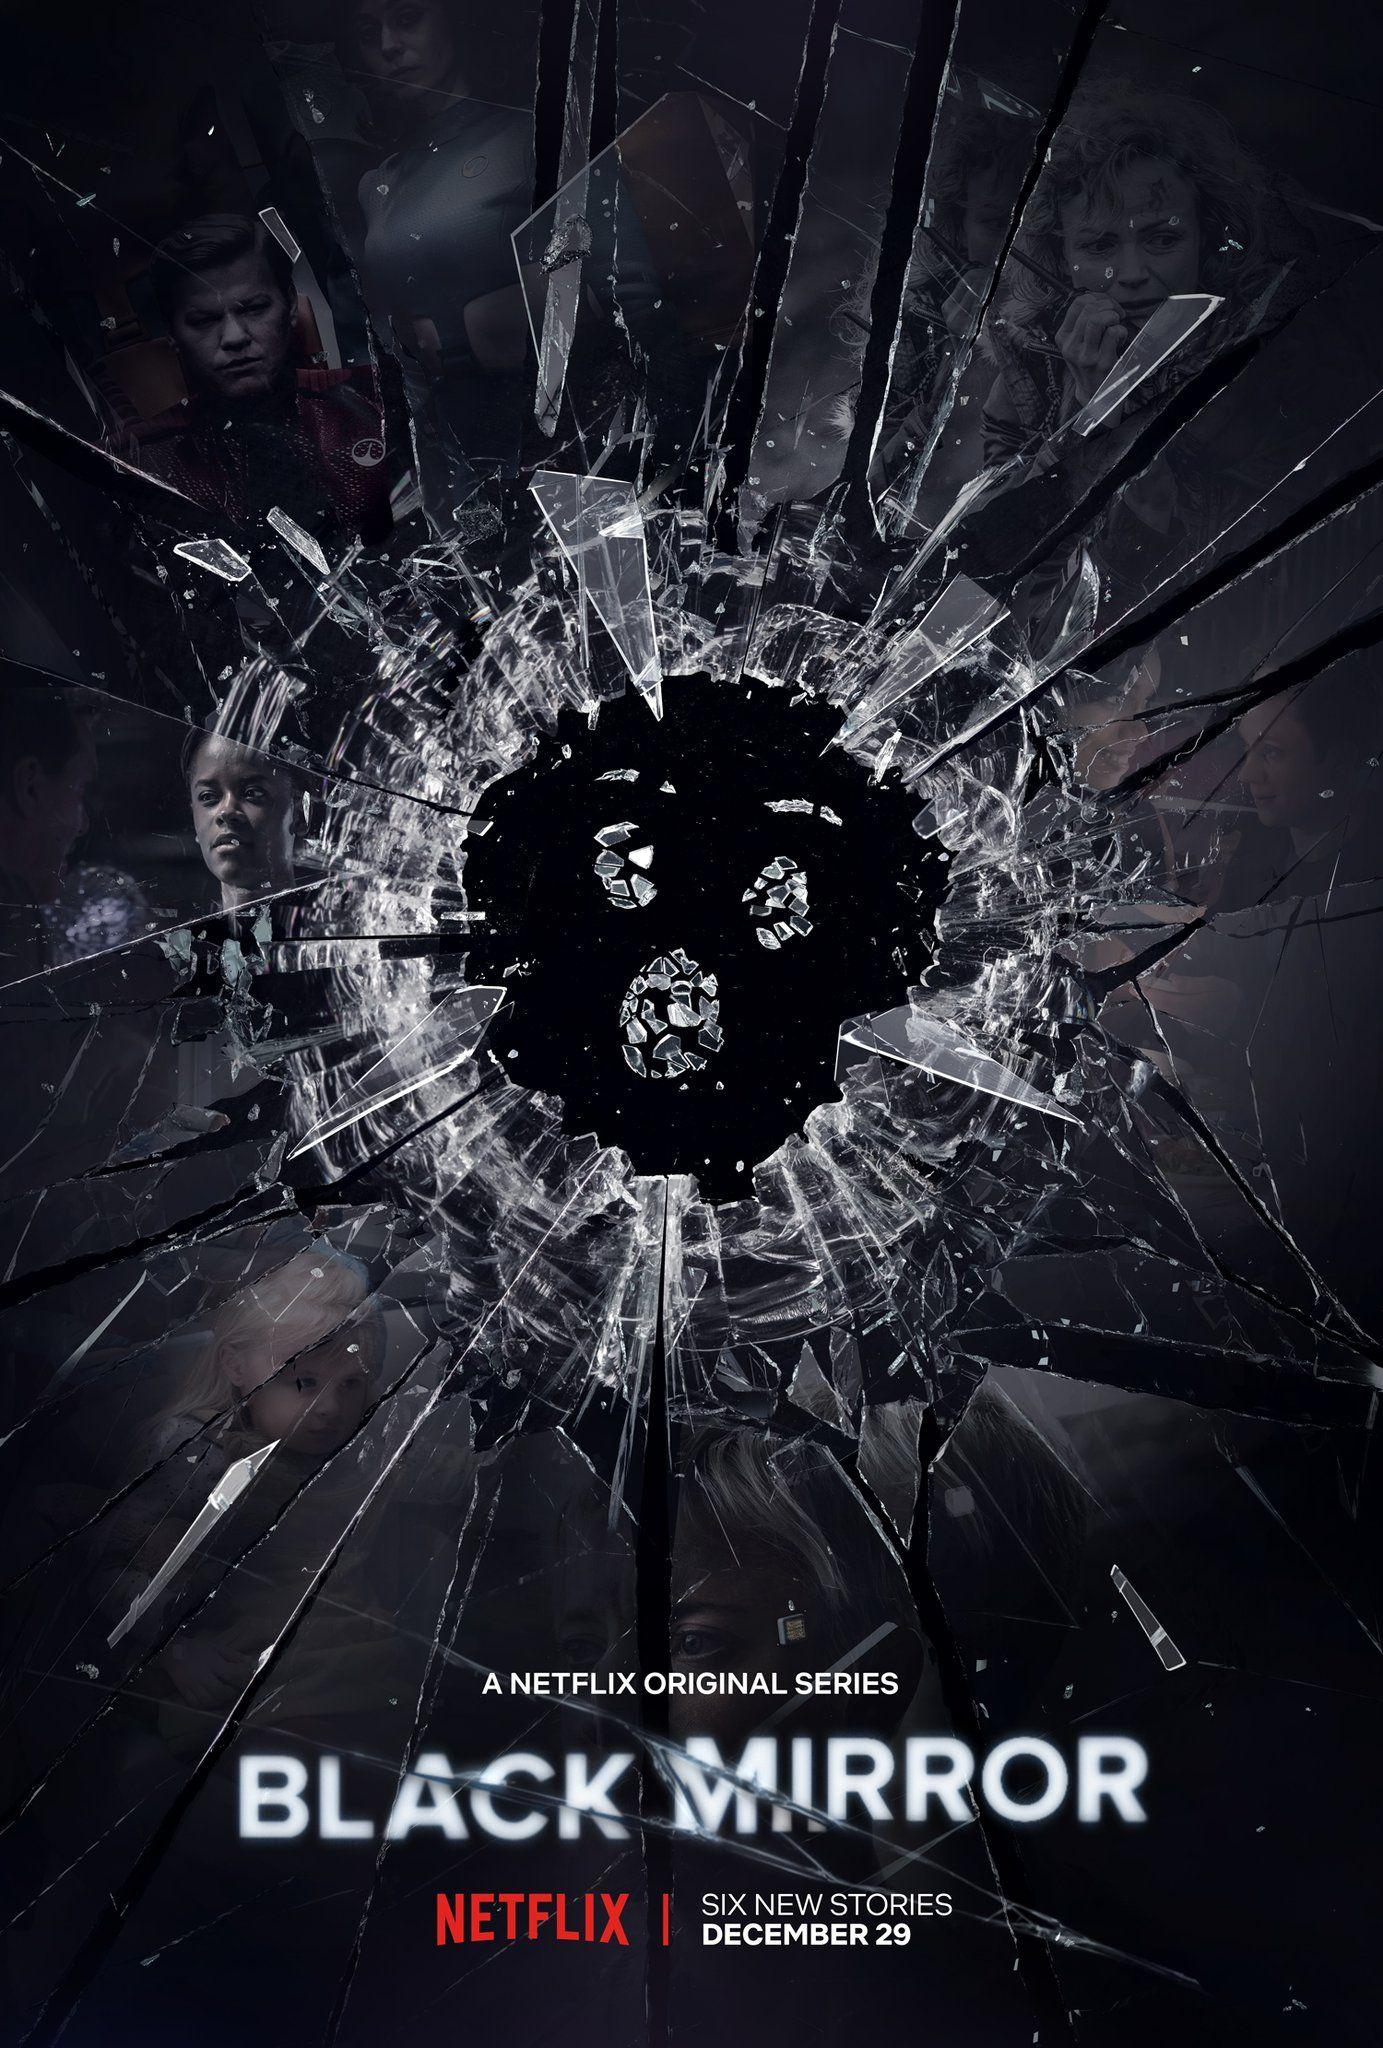 Black Mirror Season 5 Wallpapers Wallpaper Cave